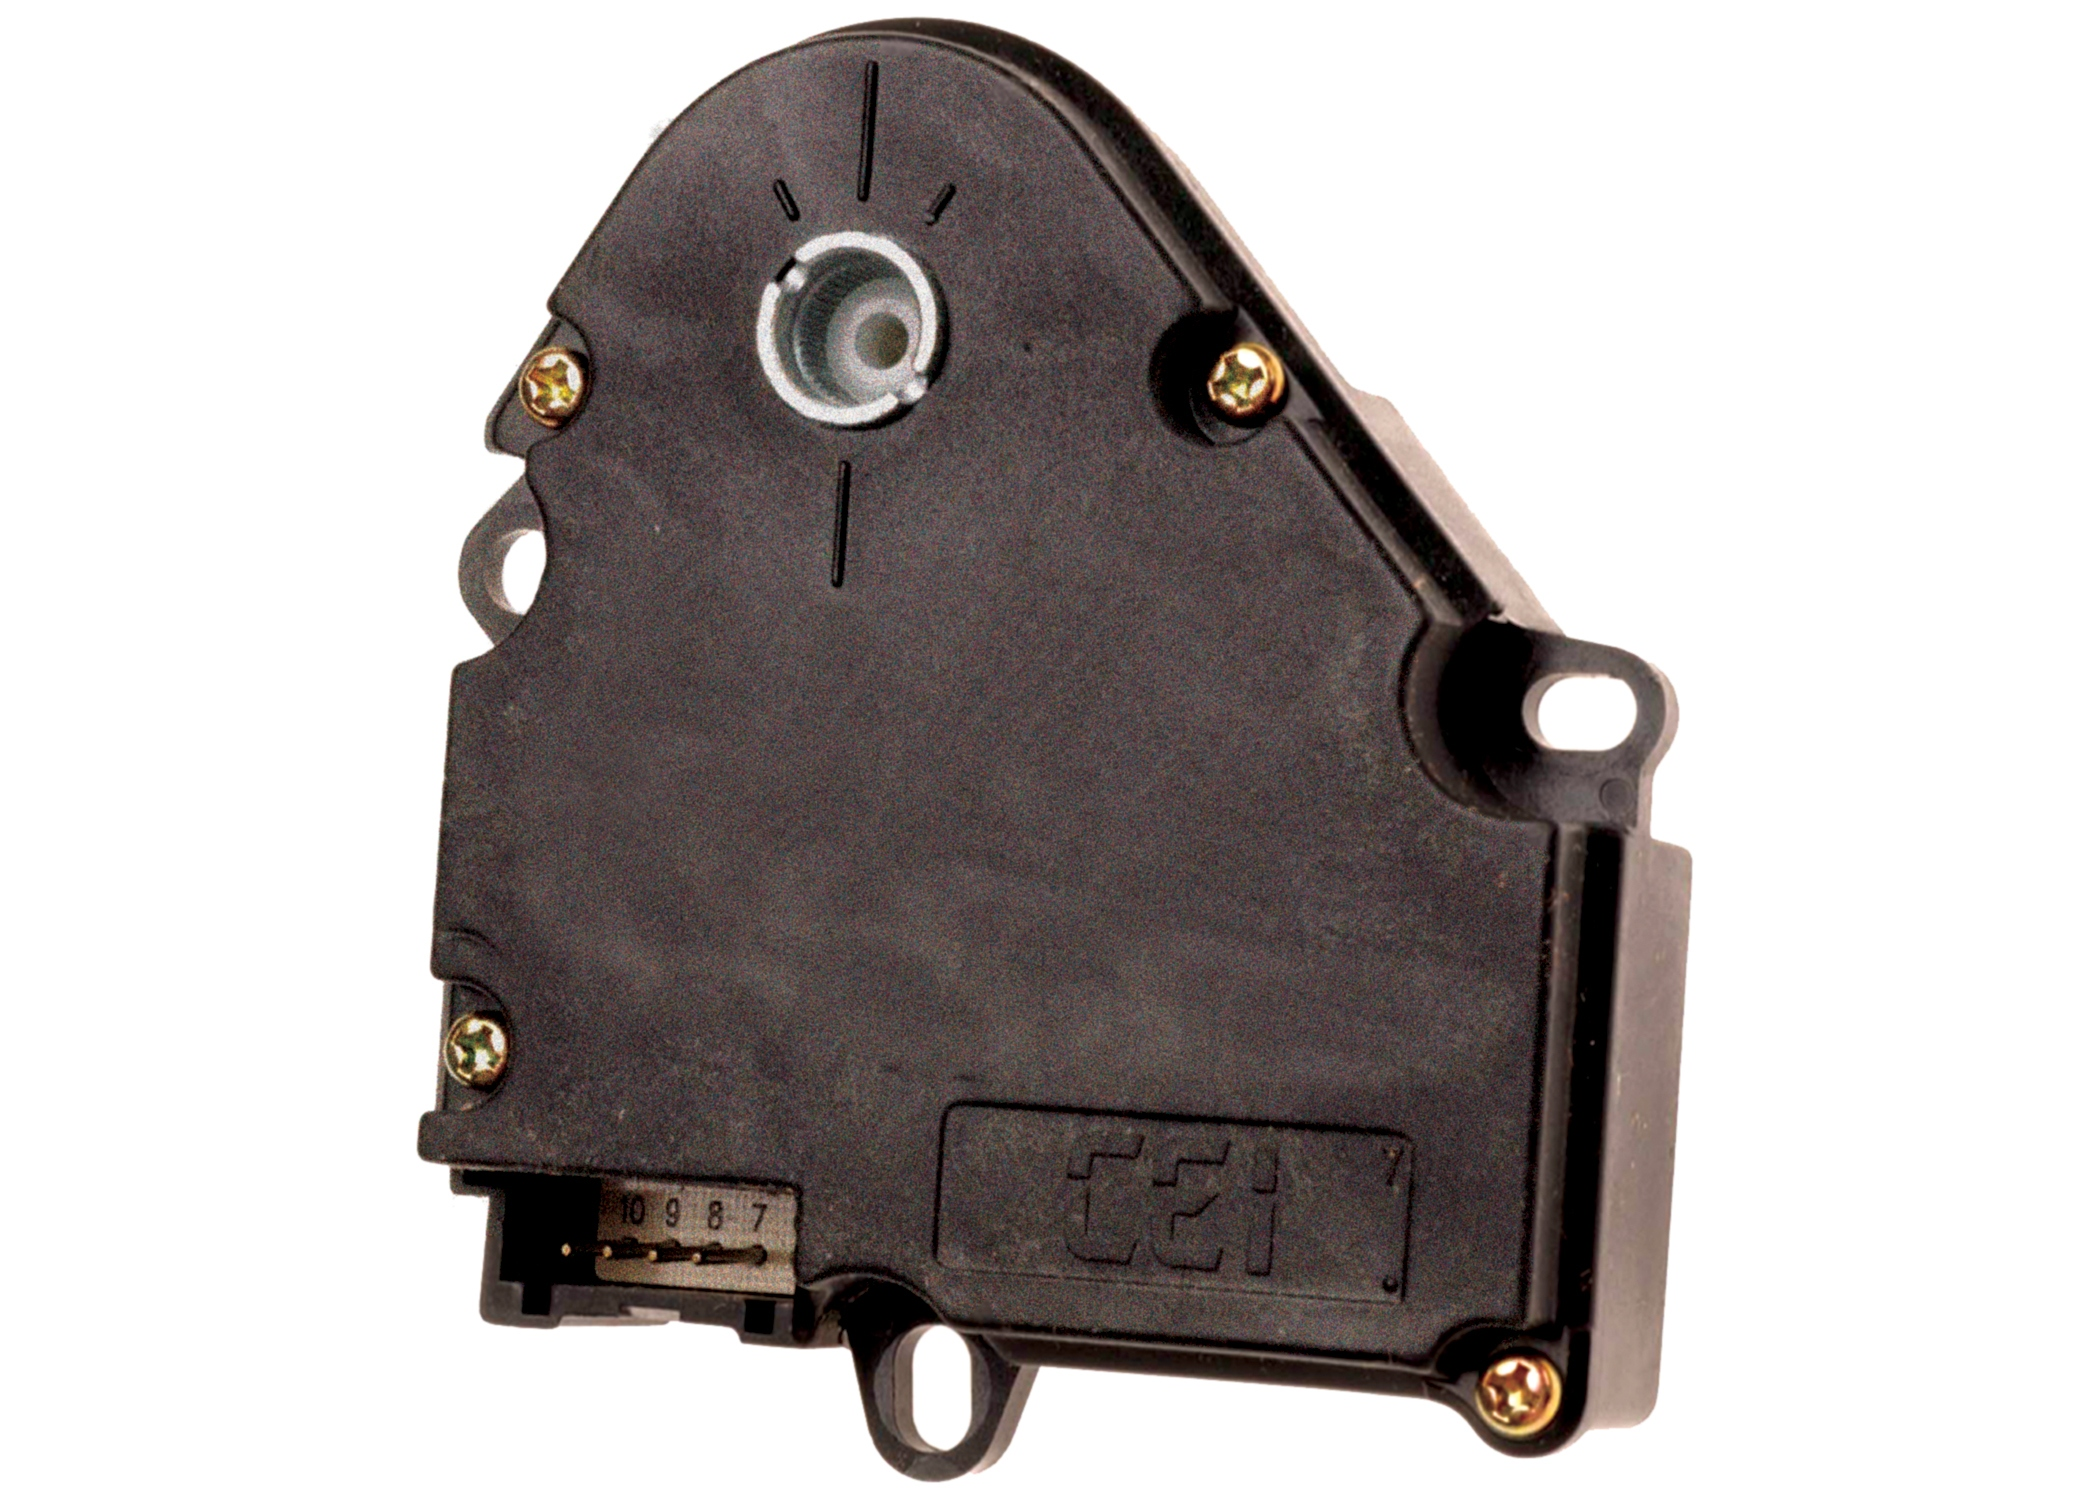 ACDELCO OE SERVICE - HVAC Heater Blend Door Actuator - DCB 15-72649